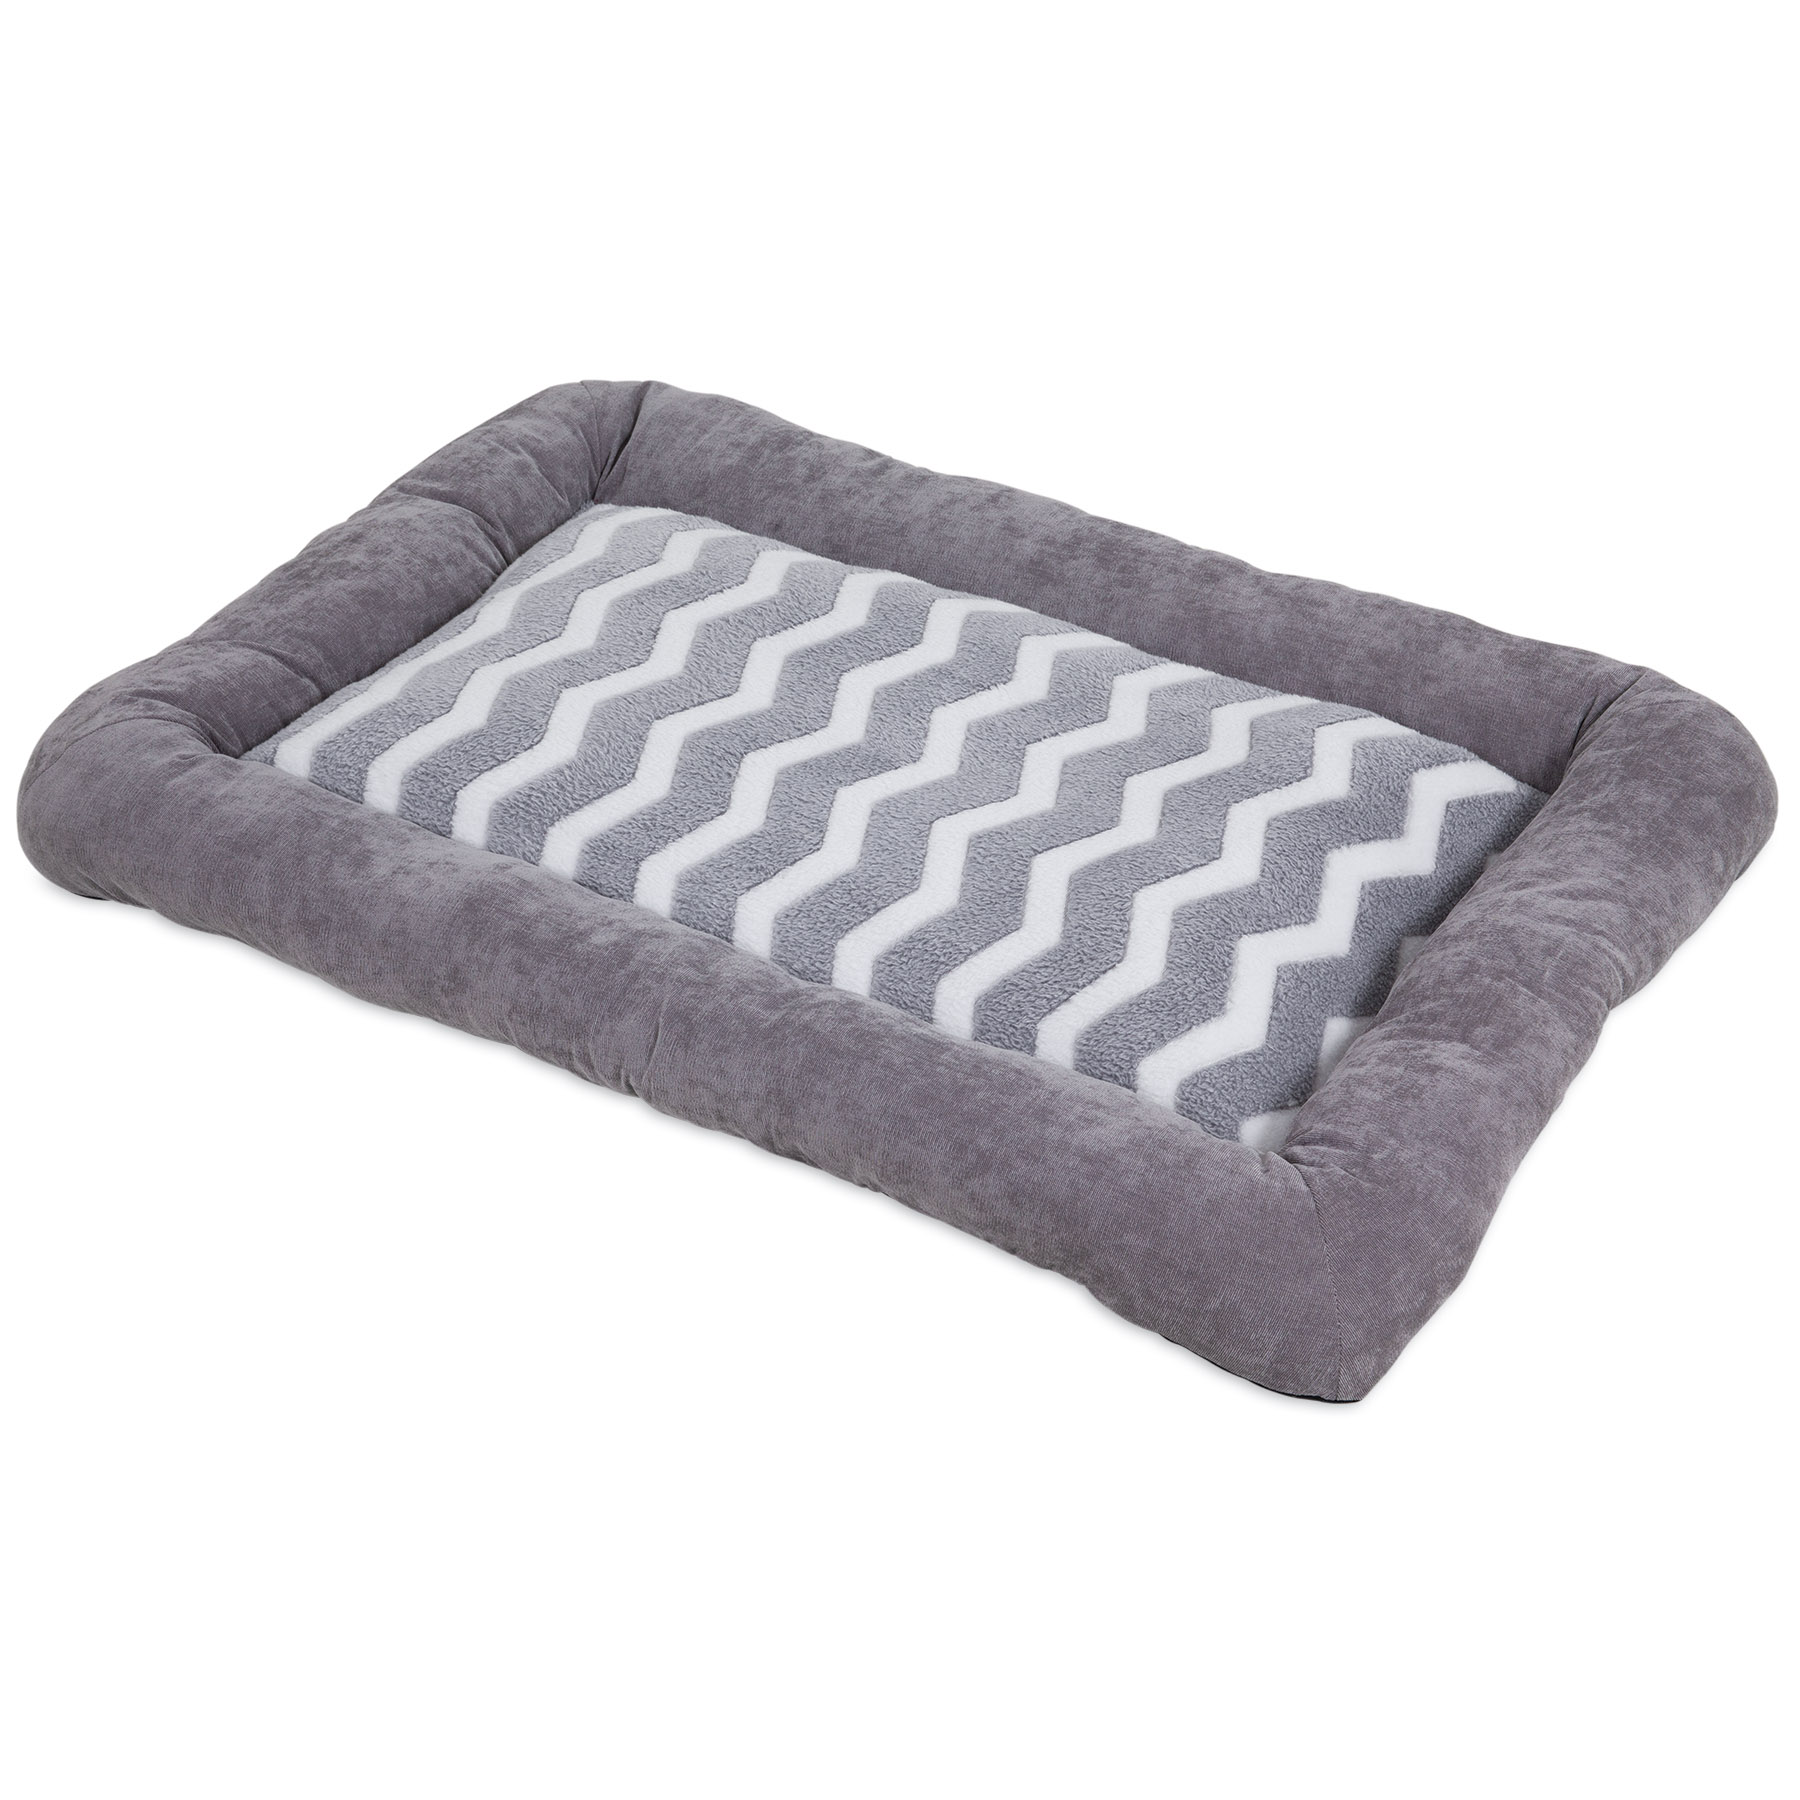 Precision SnooZZy Zig Zag Low Bumper Kennel Pet Mat Image